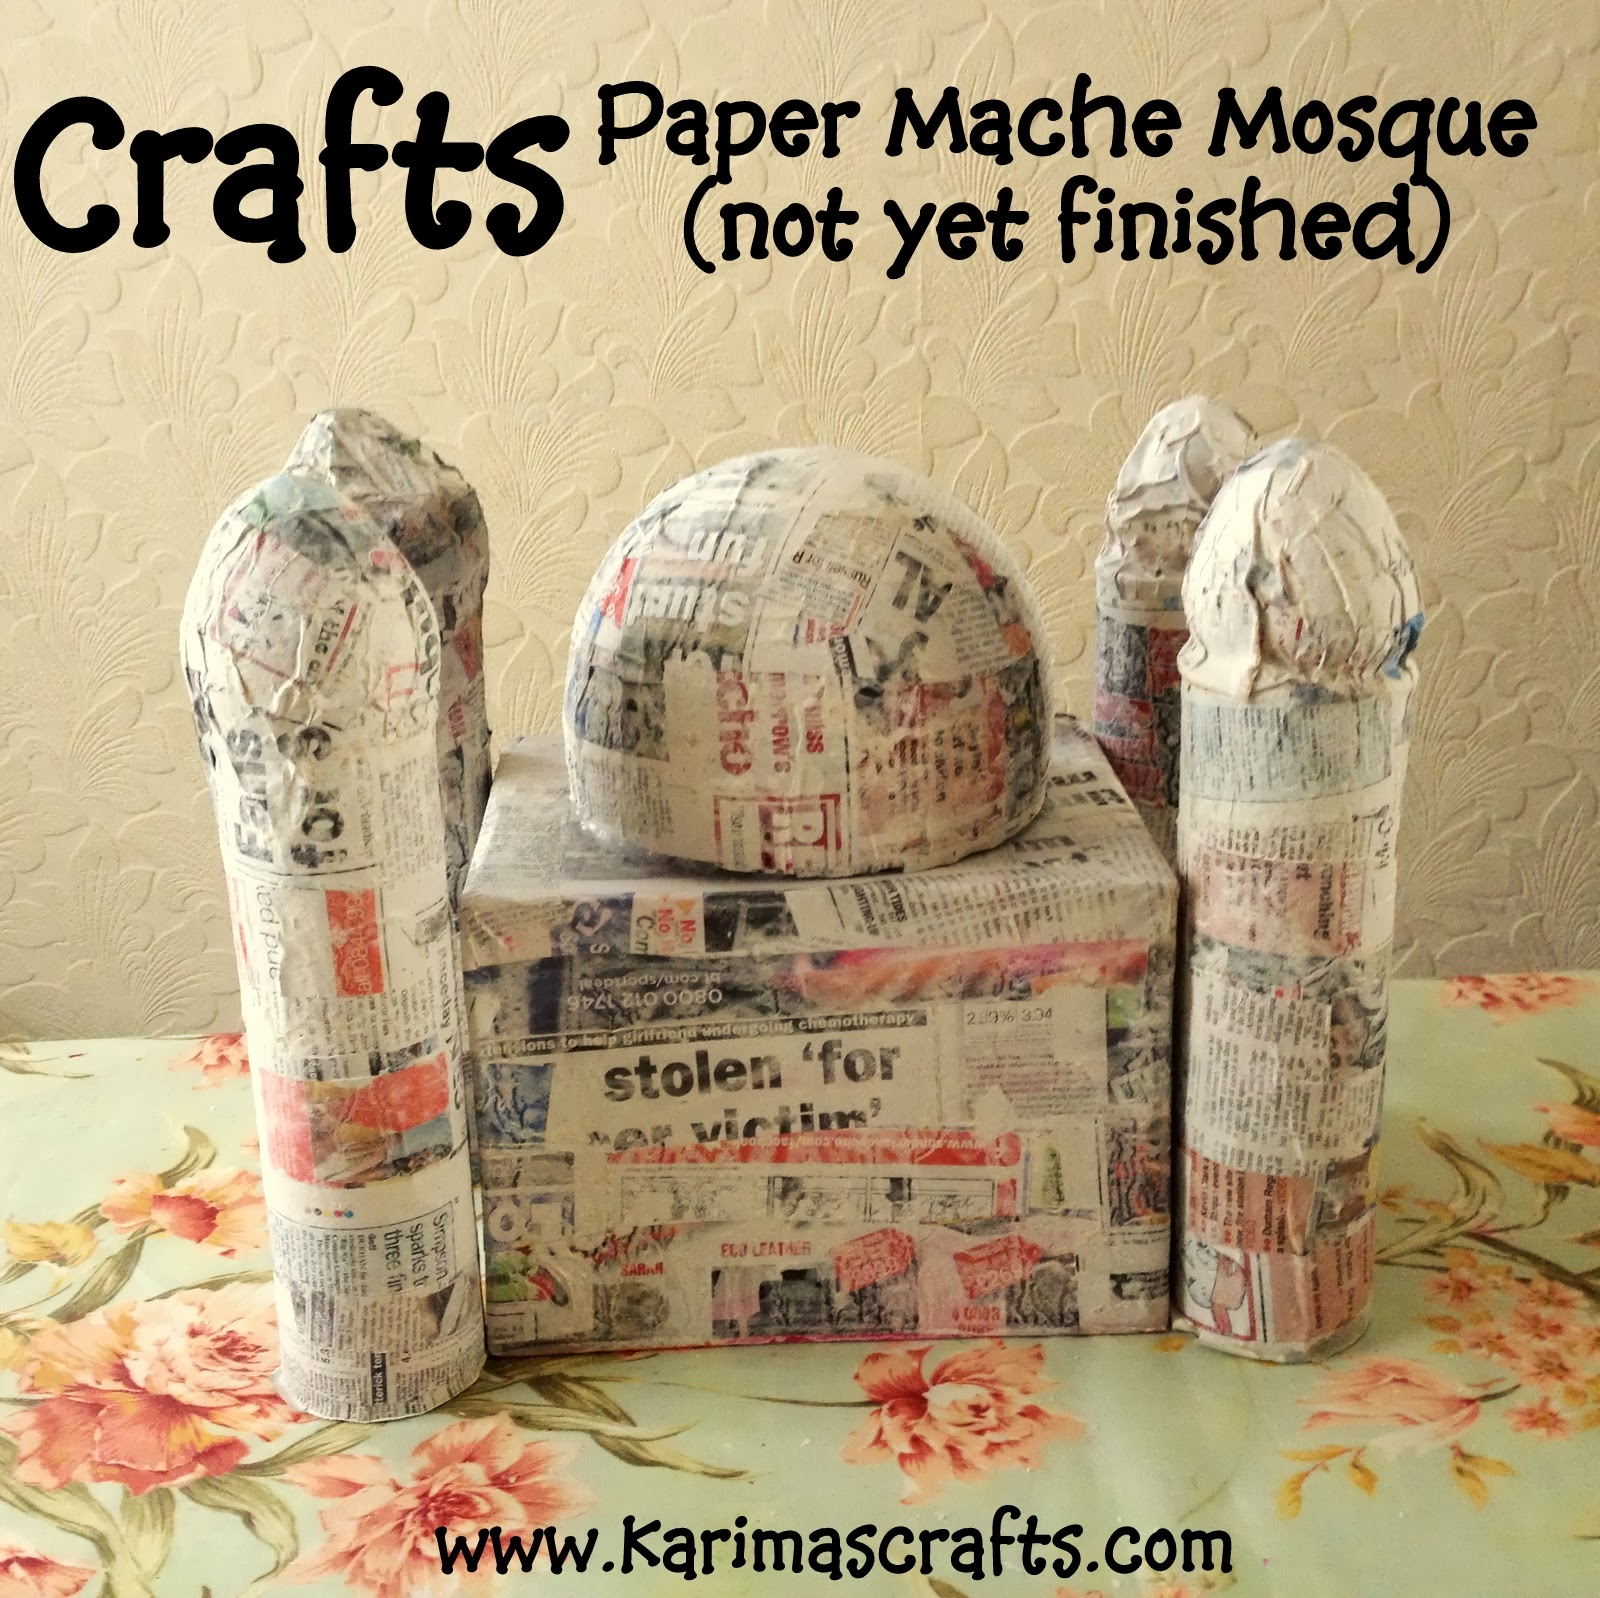 Karima 39 s crafts paper mache mosque tutorial 30 days of for How do you make paper mache glue at home